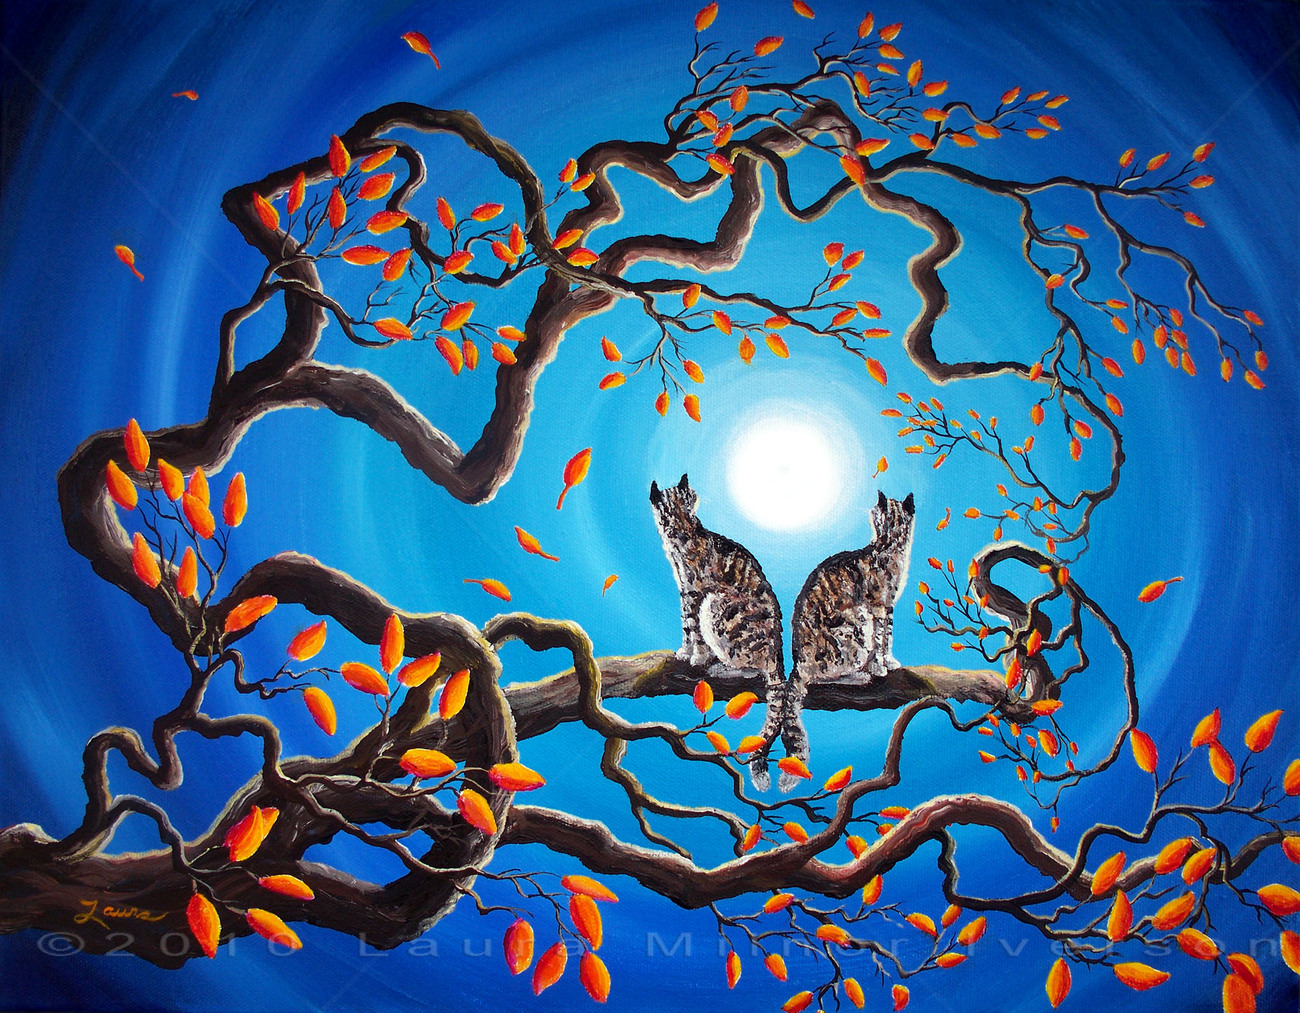 Gray Tabby Cats Blue Moon Autumn Tree Branch Zen Art Surreal Original Painting